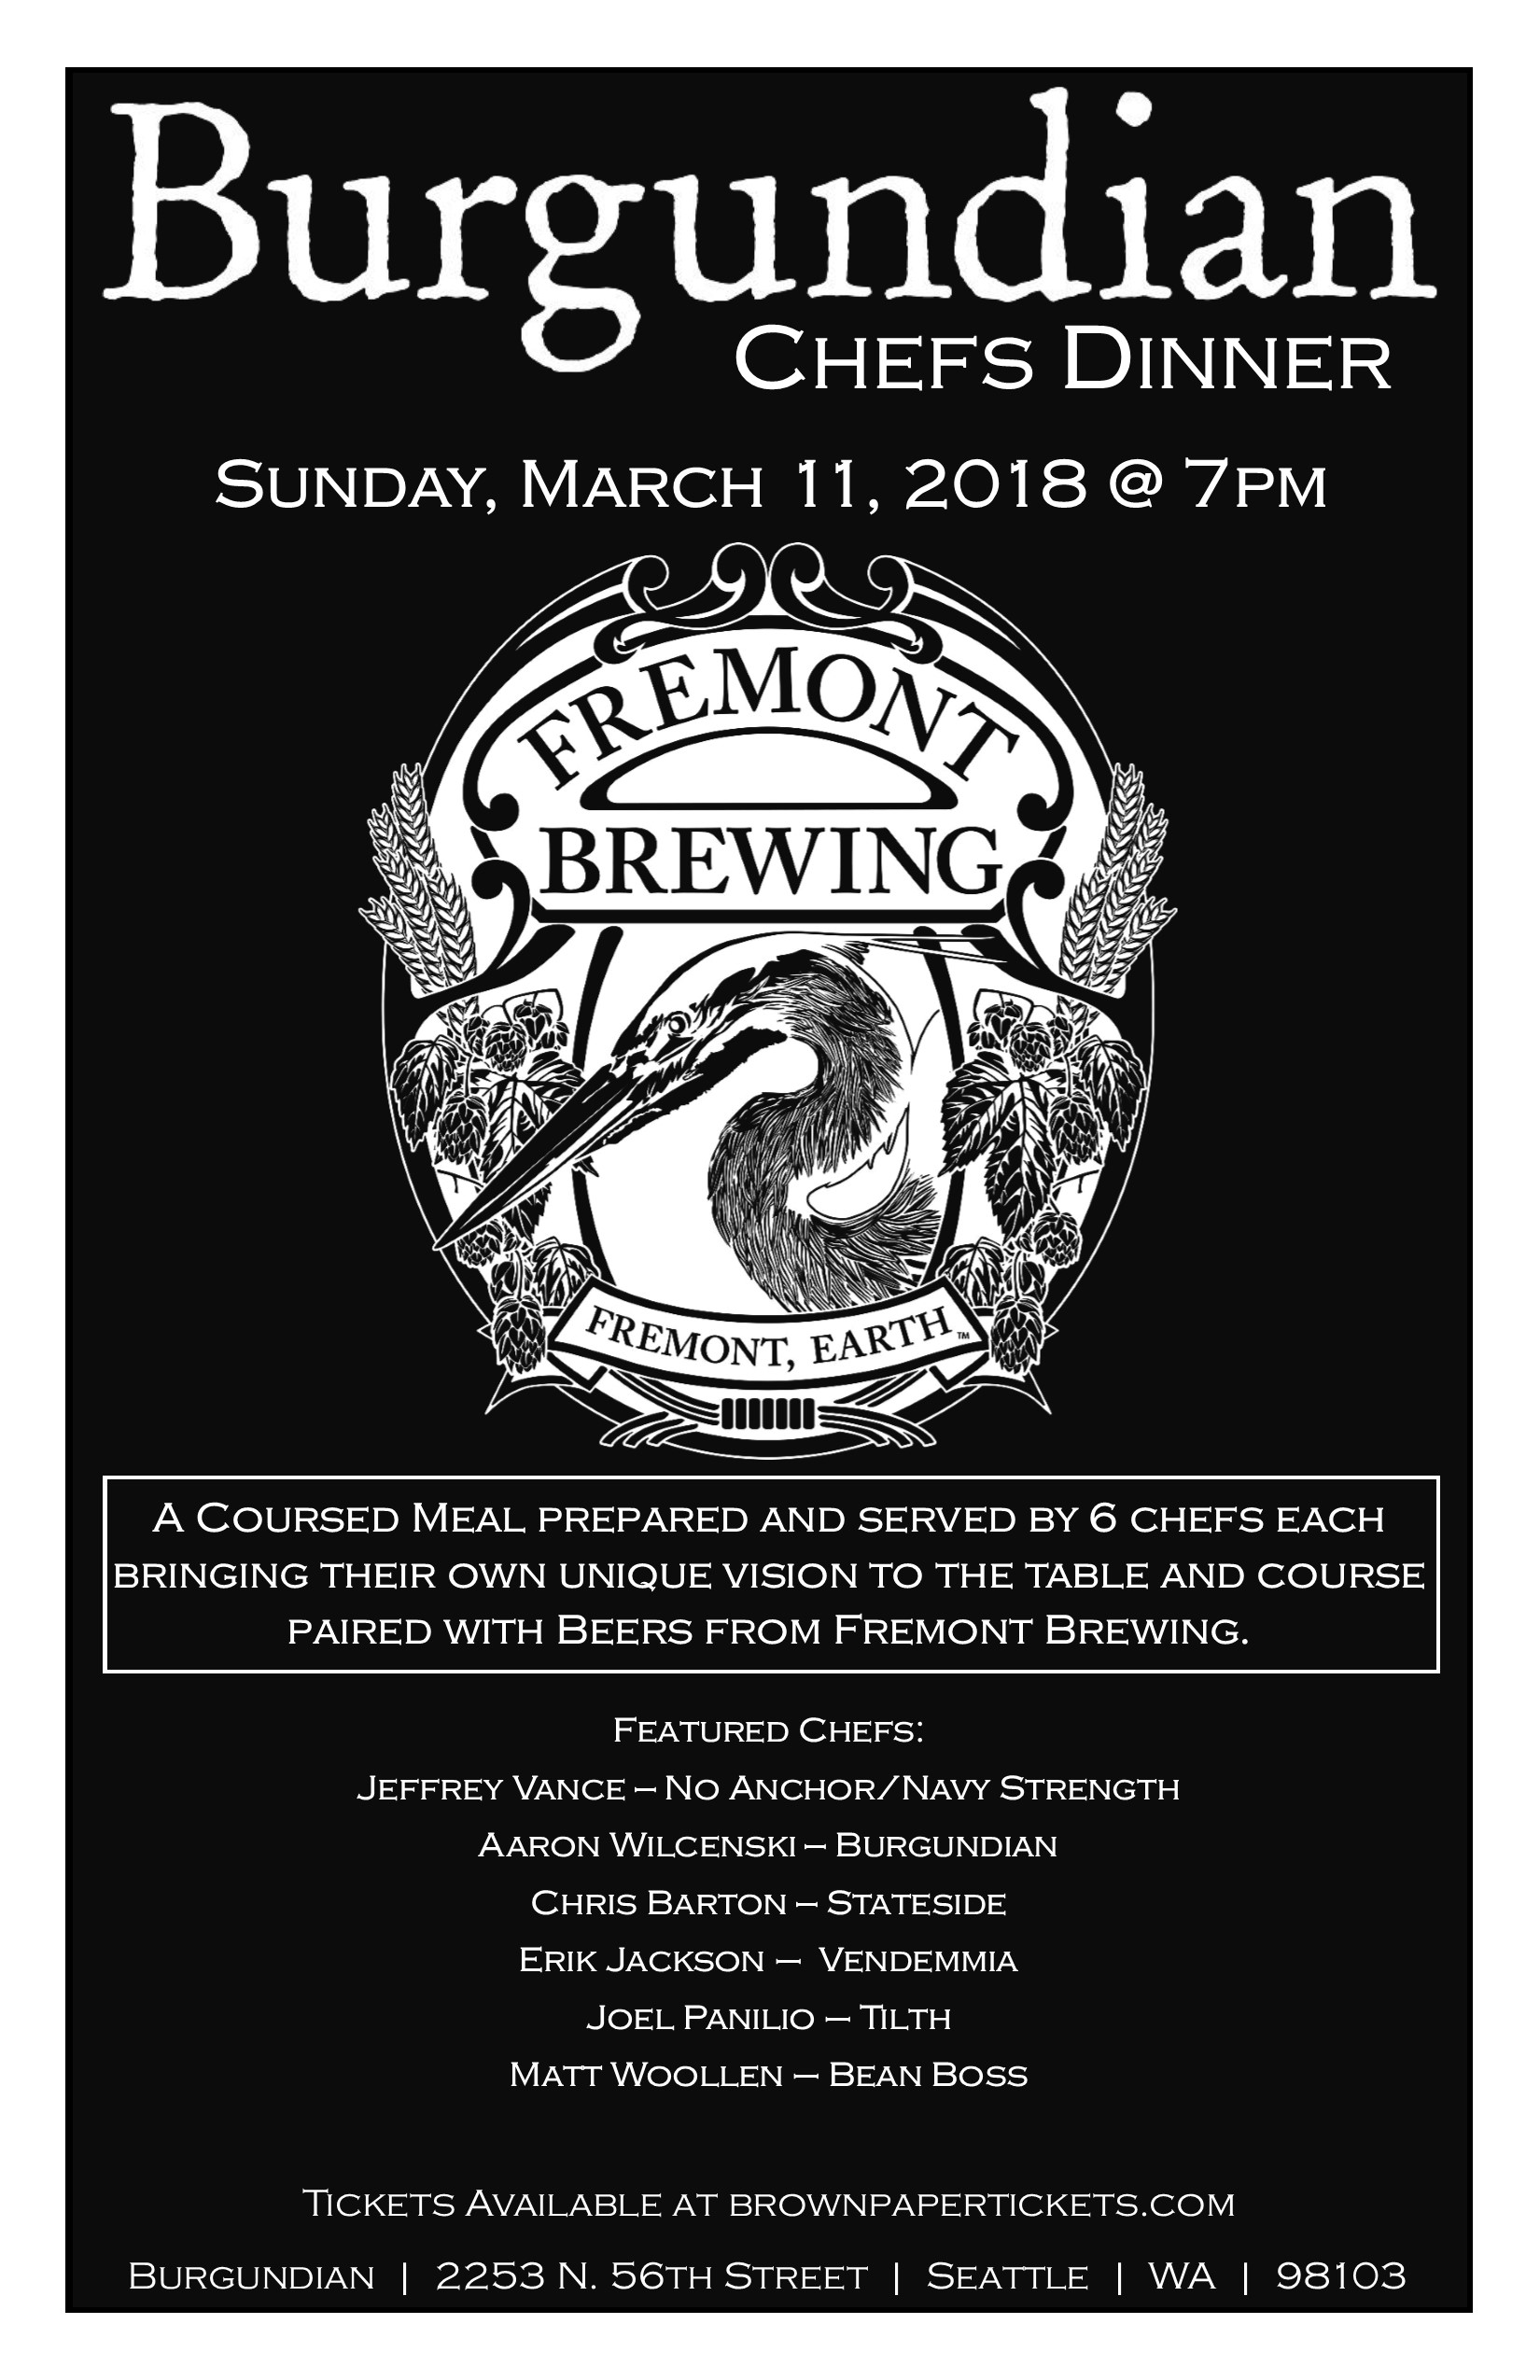 Burgundian Chefs Dinner with Fremont Brewing- Sunday, March 11th @ 7pm